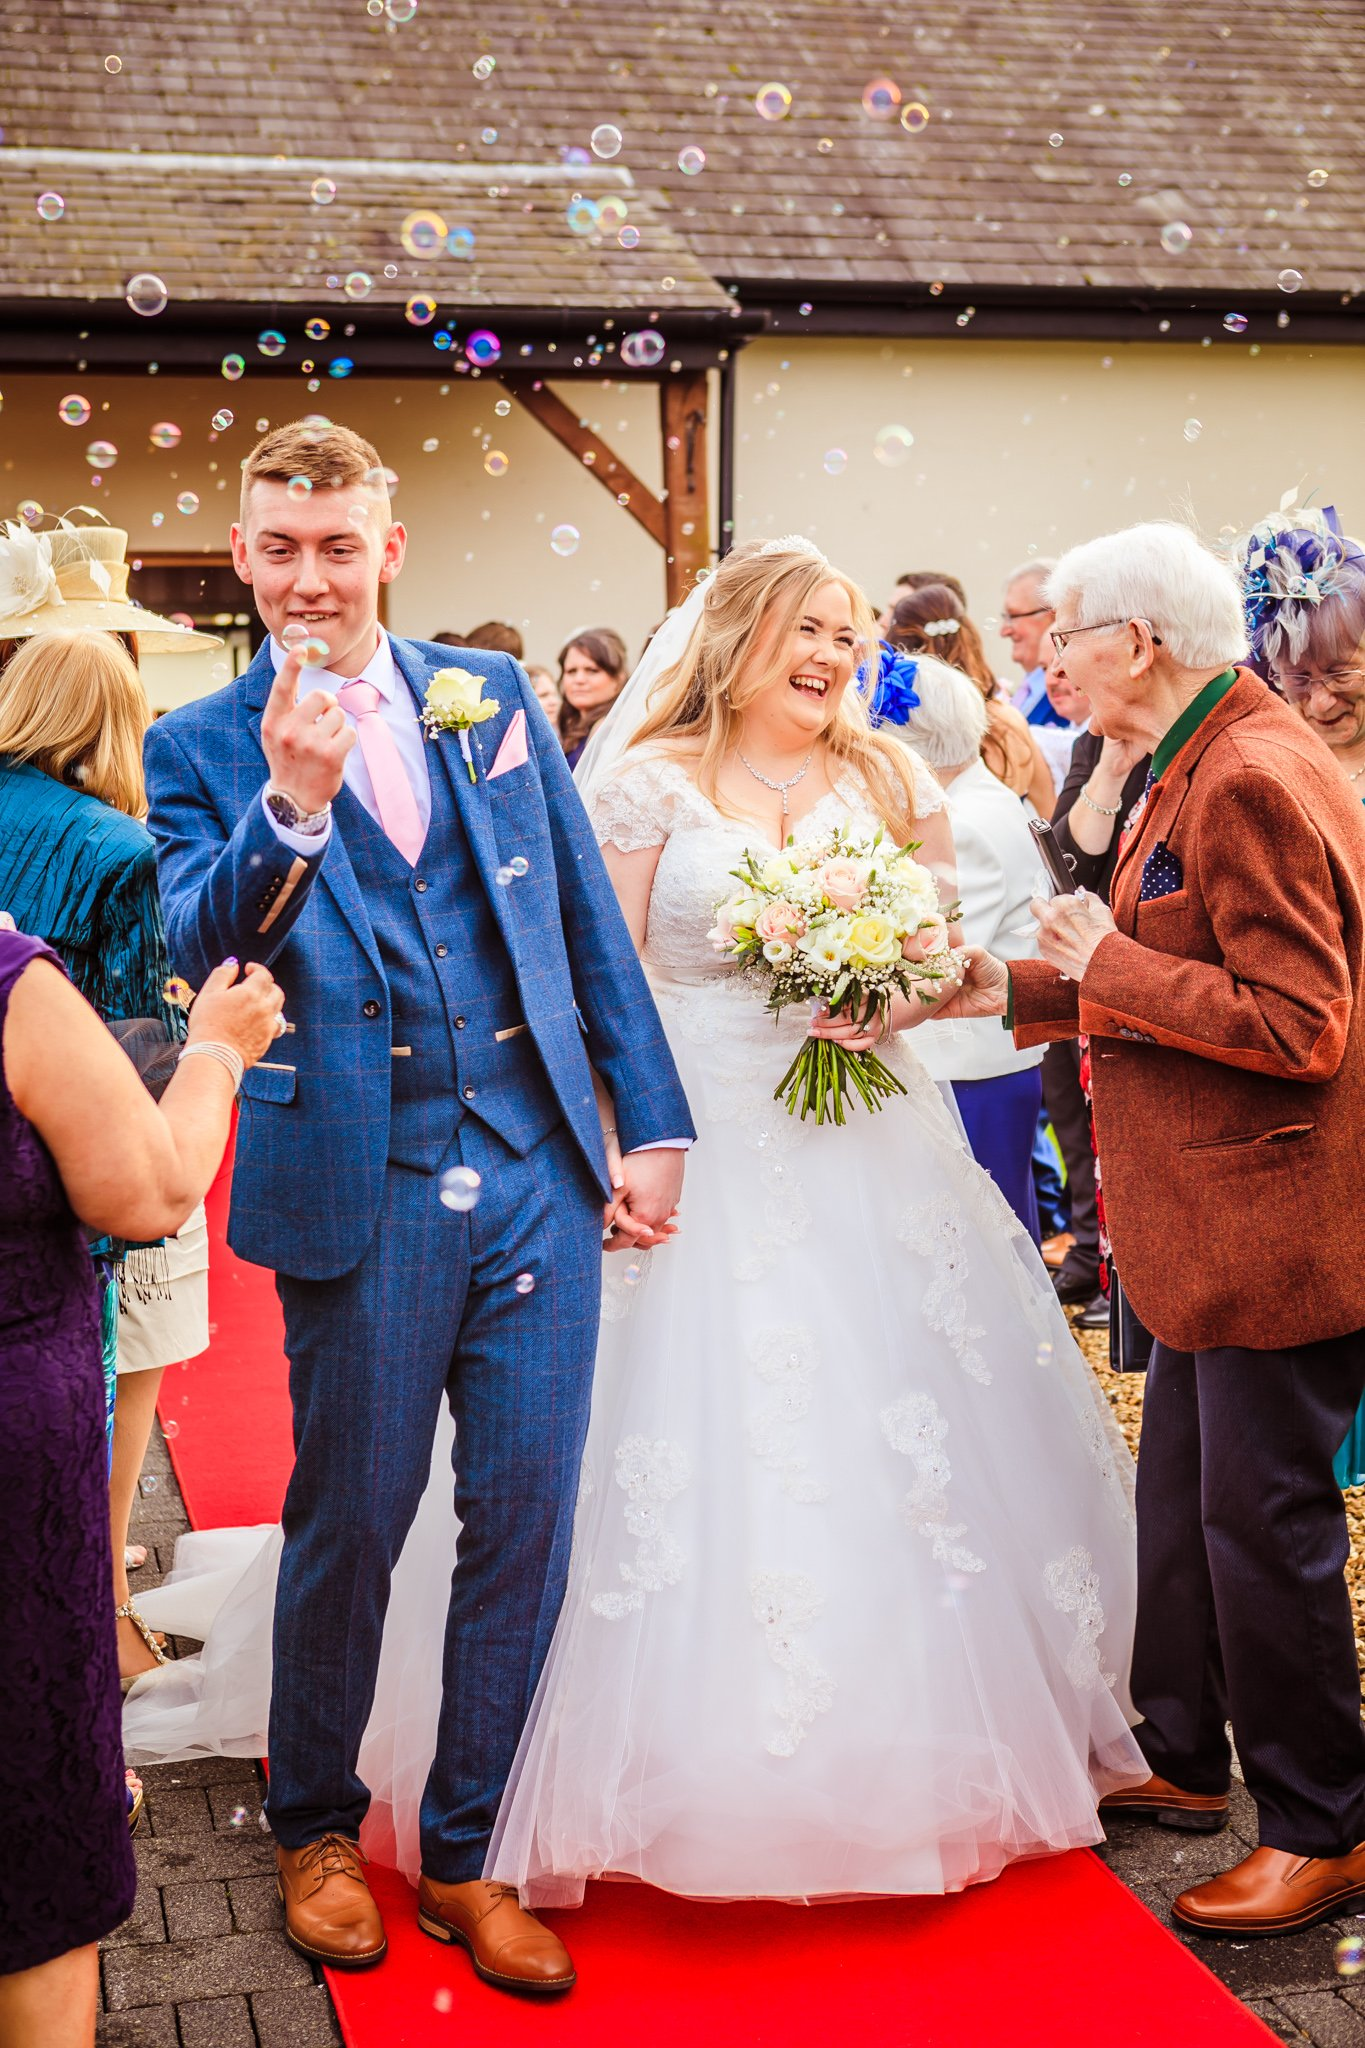 Oldwalls Gower Wedding, Tania Miller Photography, South Wales Wedding Photographer